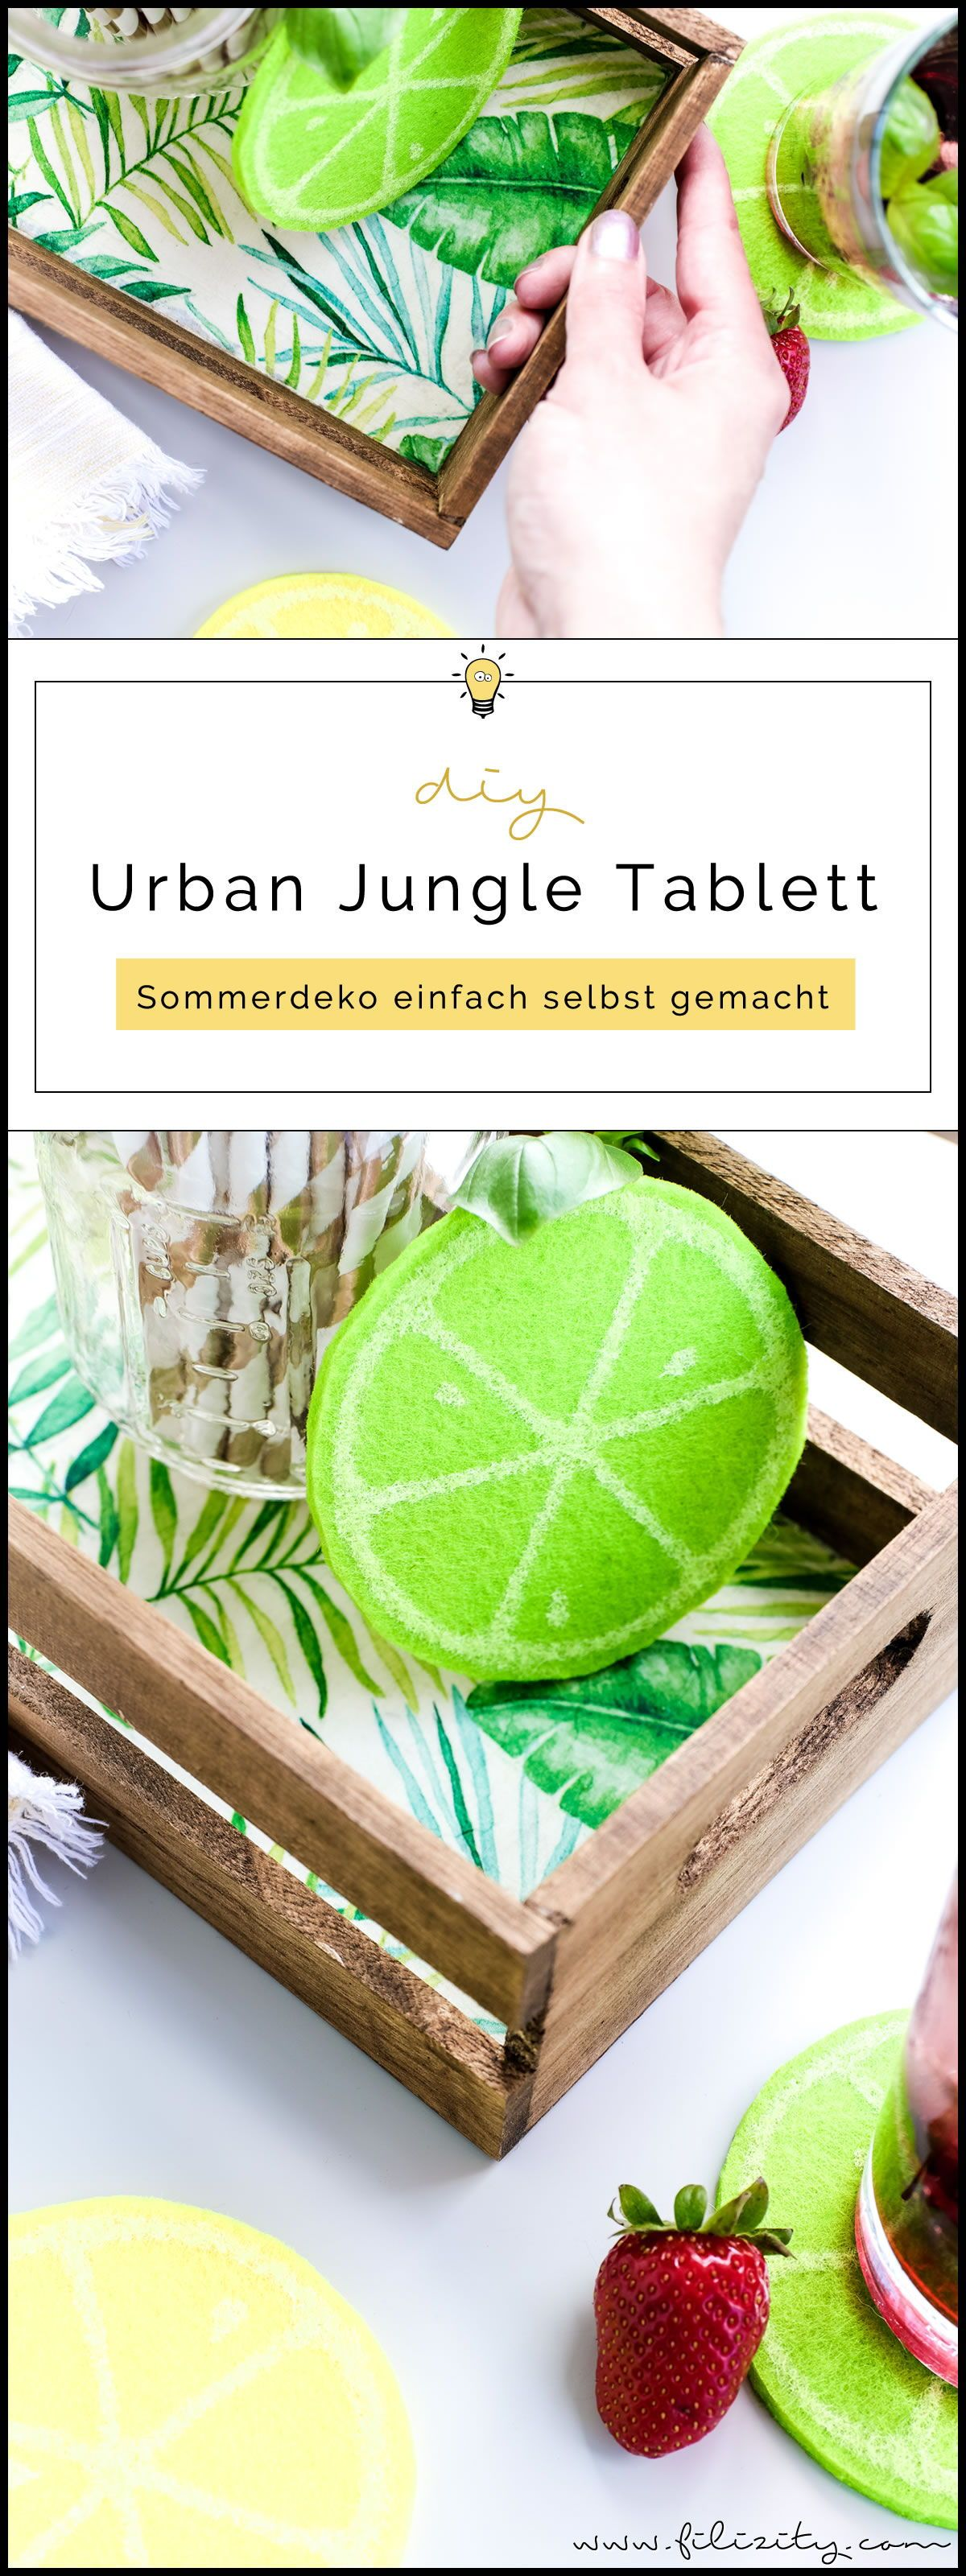 diy holz tablett im urban jungle style basteln mit serviettentechnik do it yourself pinterest. Black Bedroom Furniture Sets. Home Design Ideas